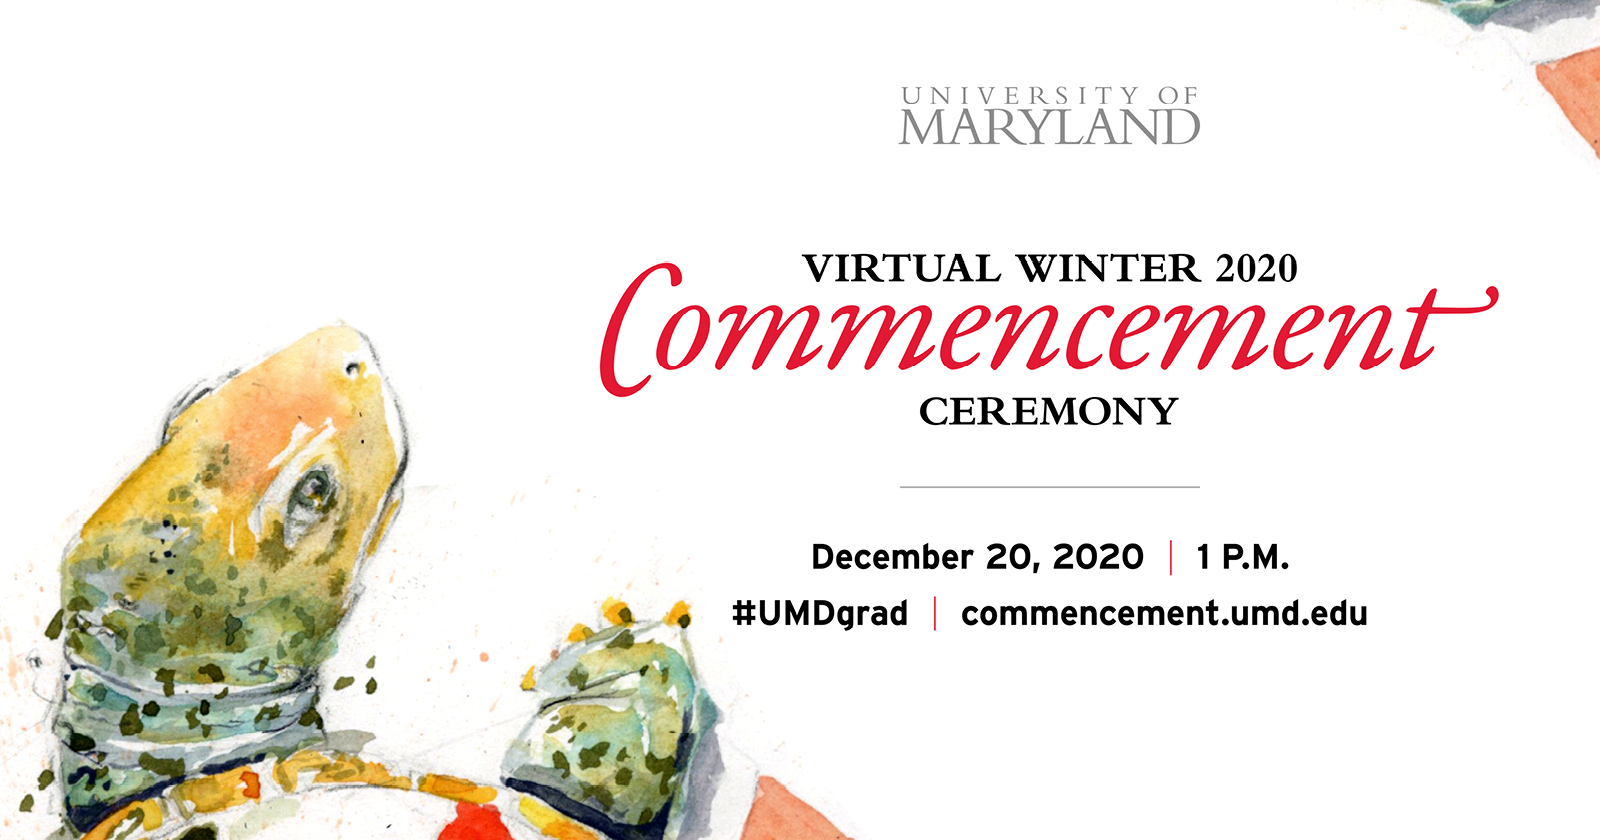 2020 Winter virtual commencement